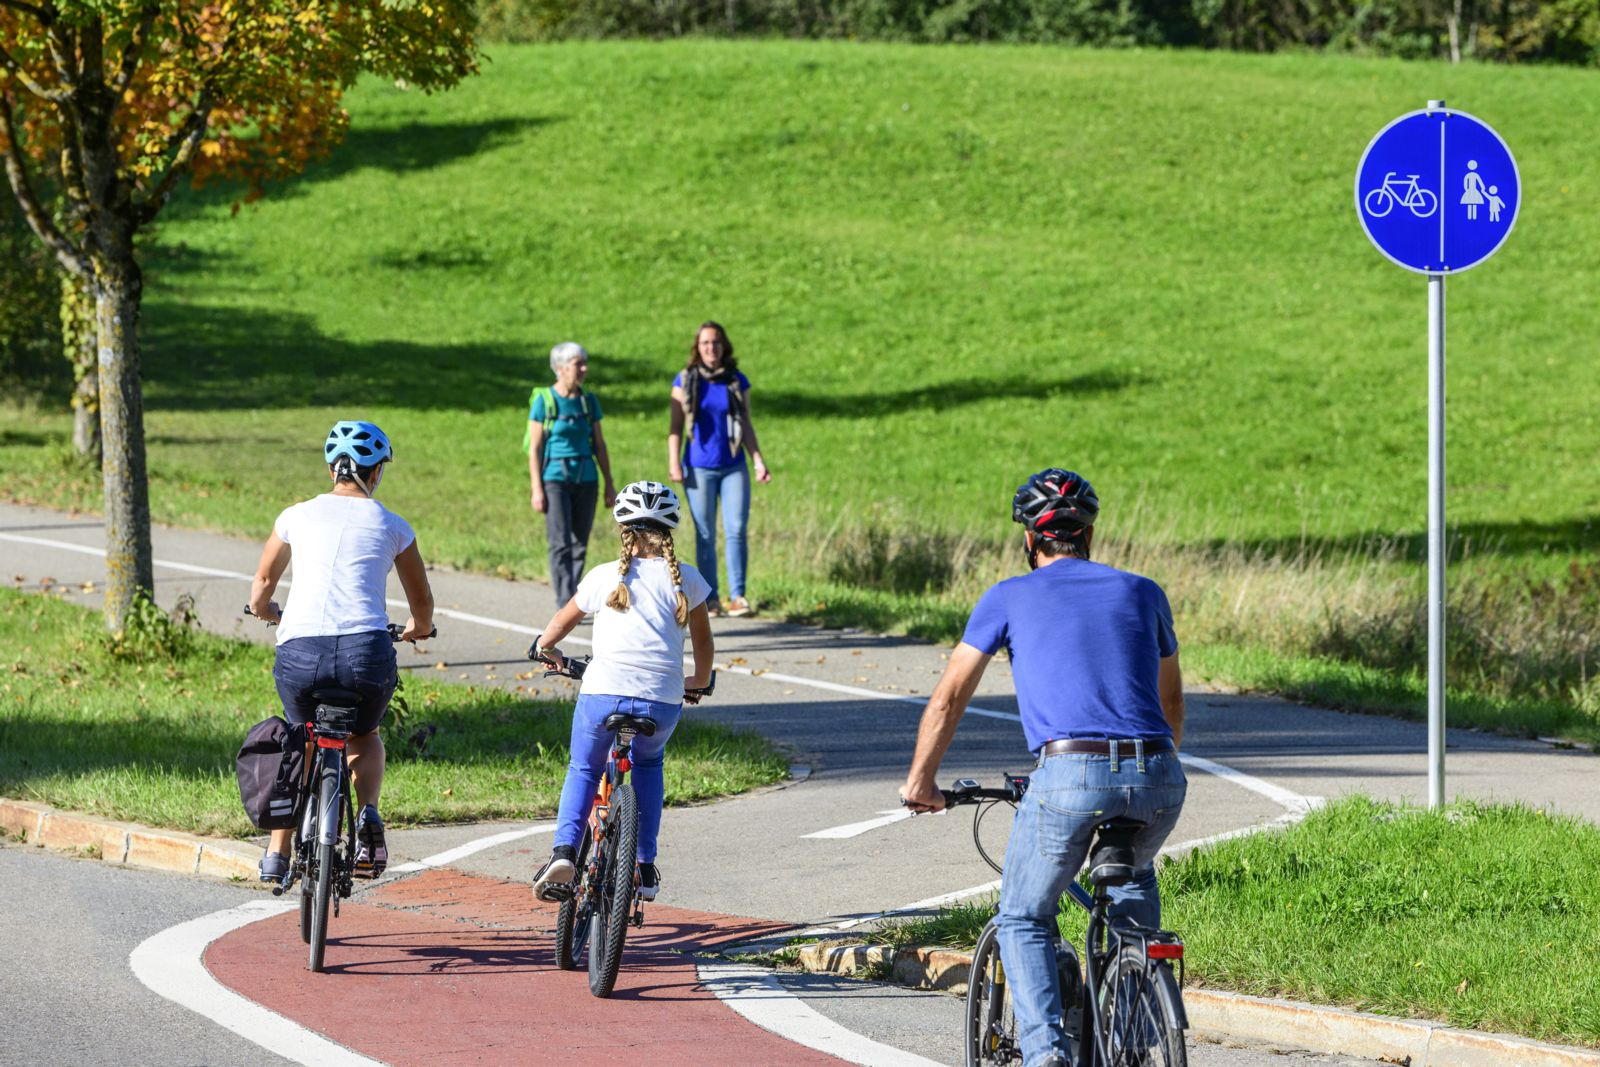 Bicyclists on bike path